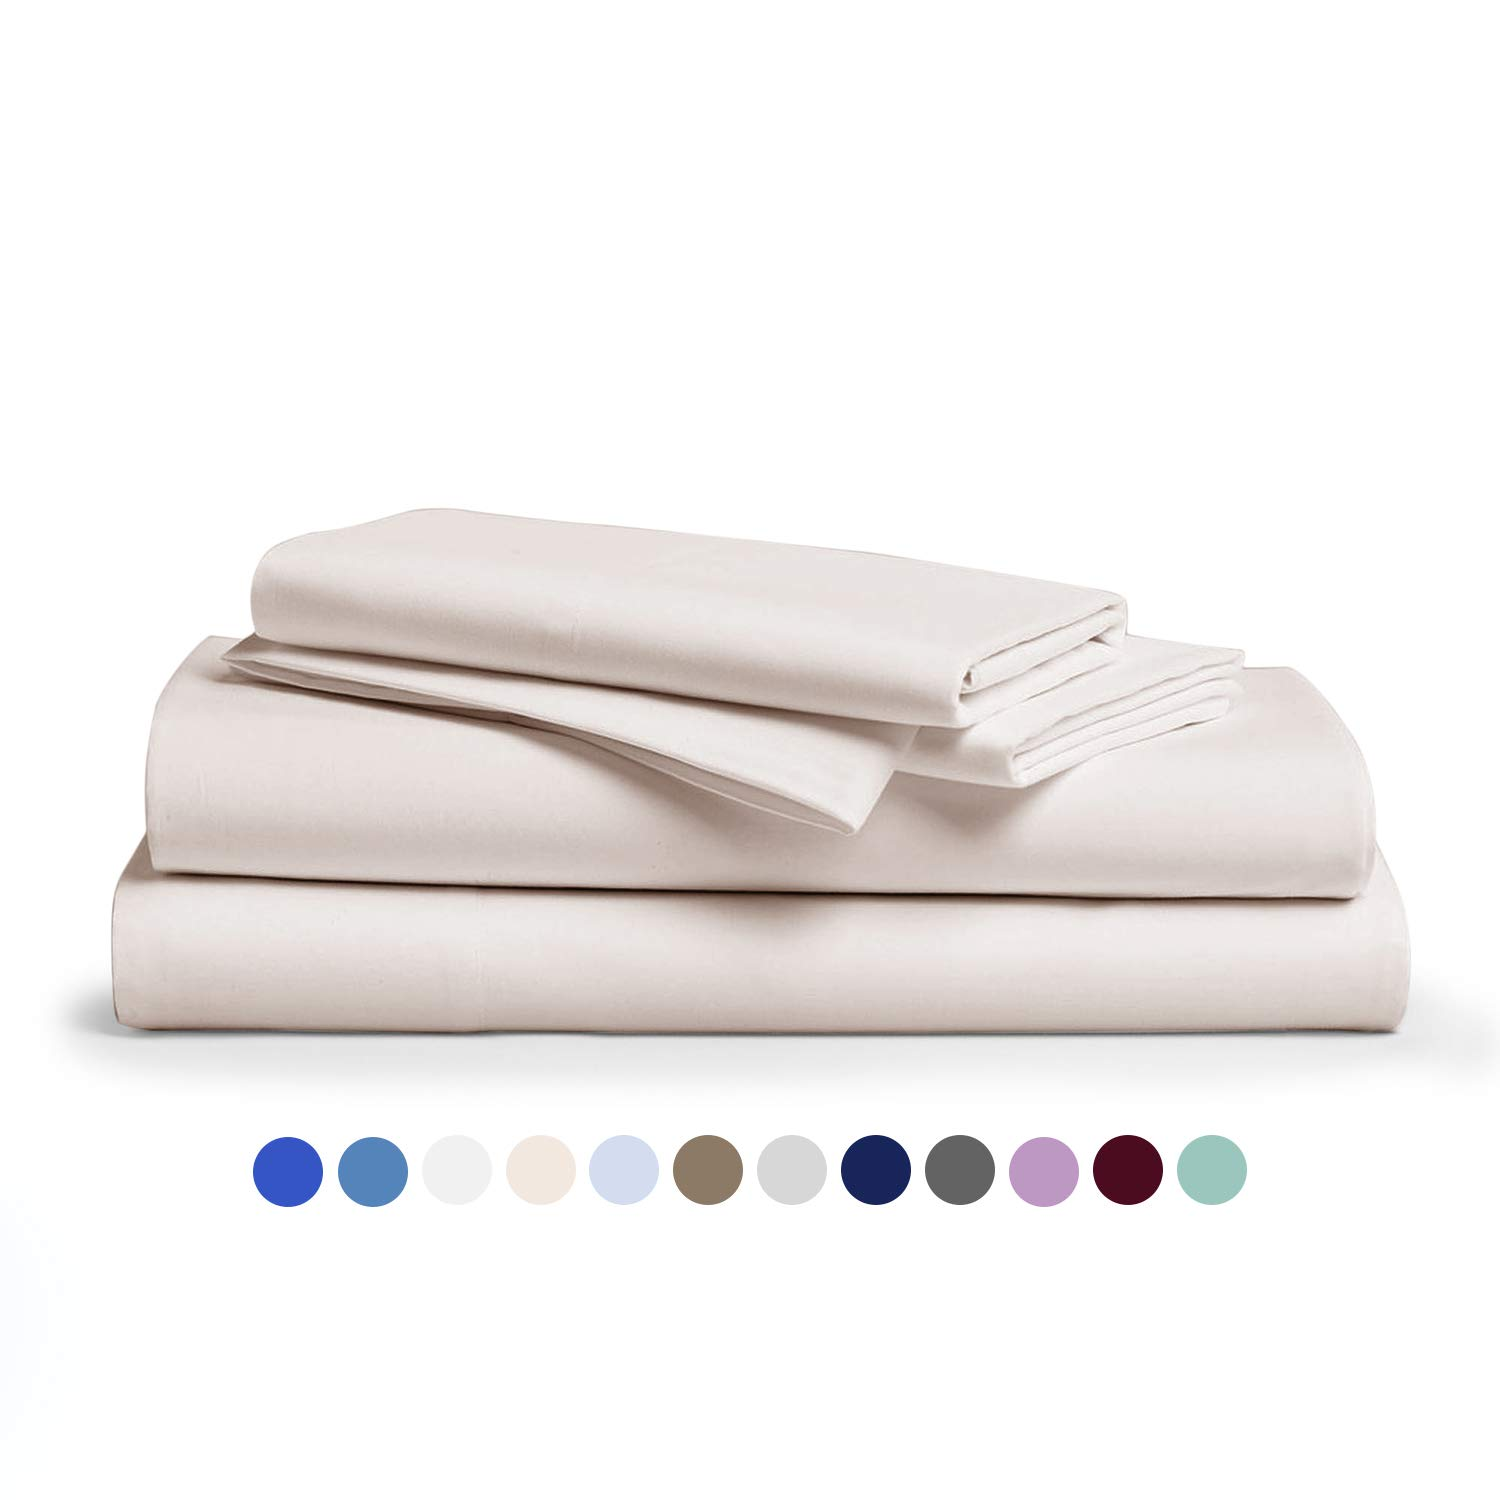 Comfy Sheets 100% Egyptian Cotton Sheets - 1000 Thread Count 4 Pc Queen Cream Bed Sheet with Pillowcases, Premium Hotel Quality Fits Mattress Up to 18'' Deep Pocket.